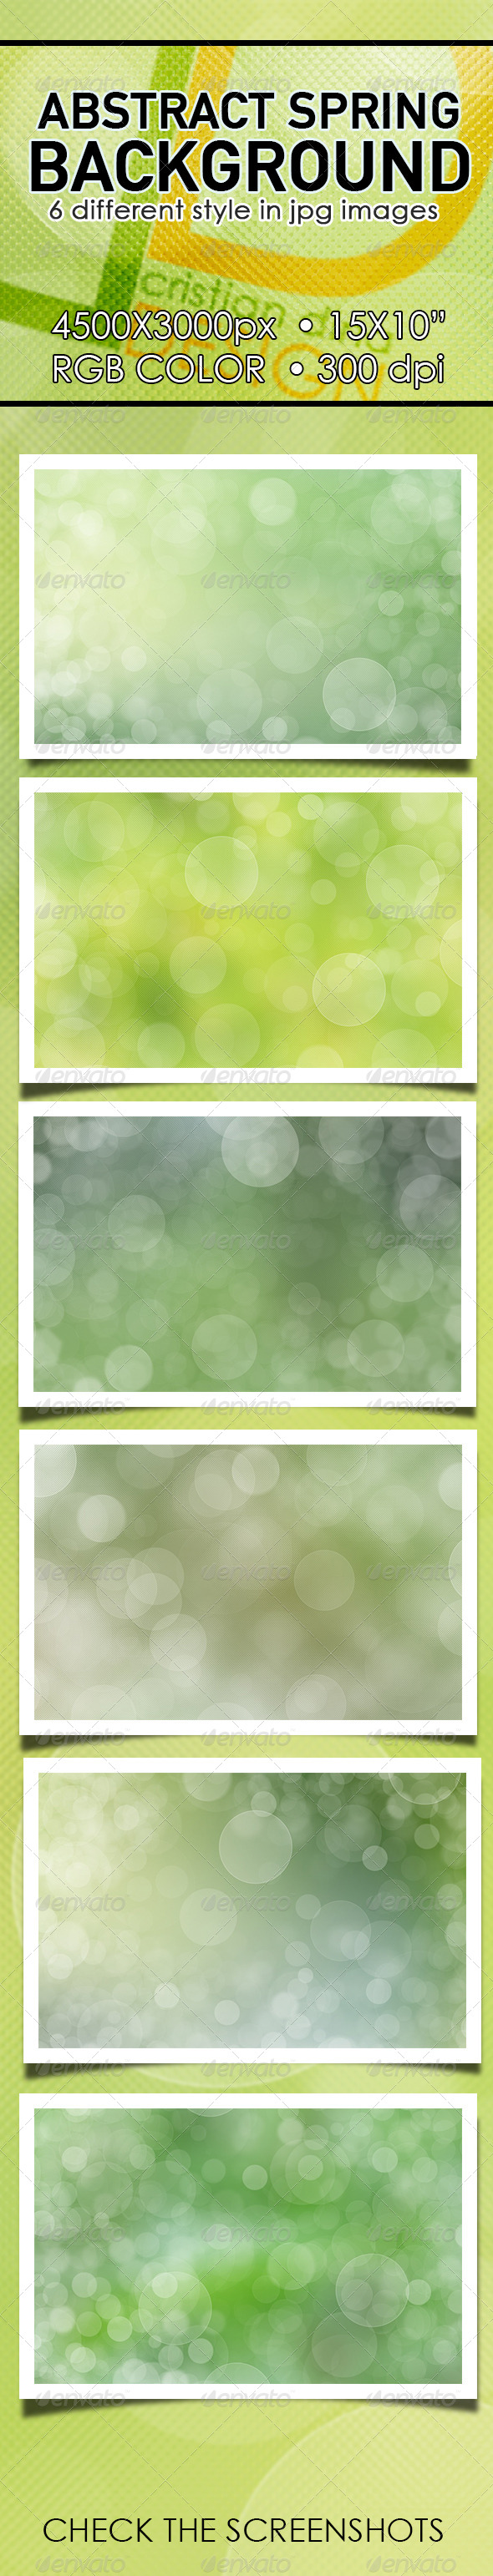 Abstract Spring Background Pack I